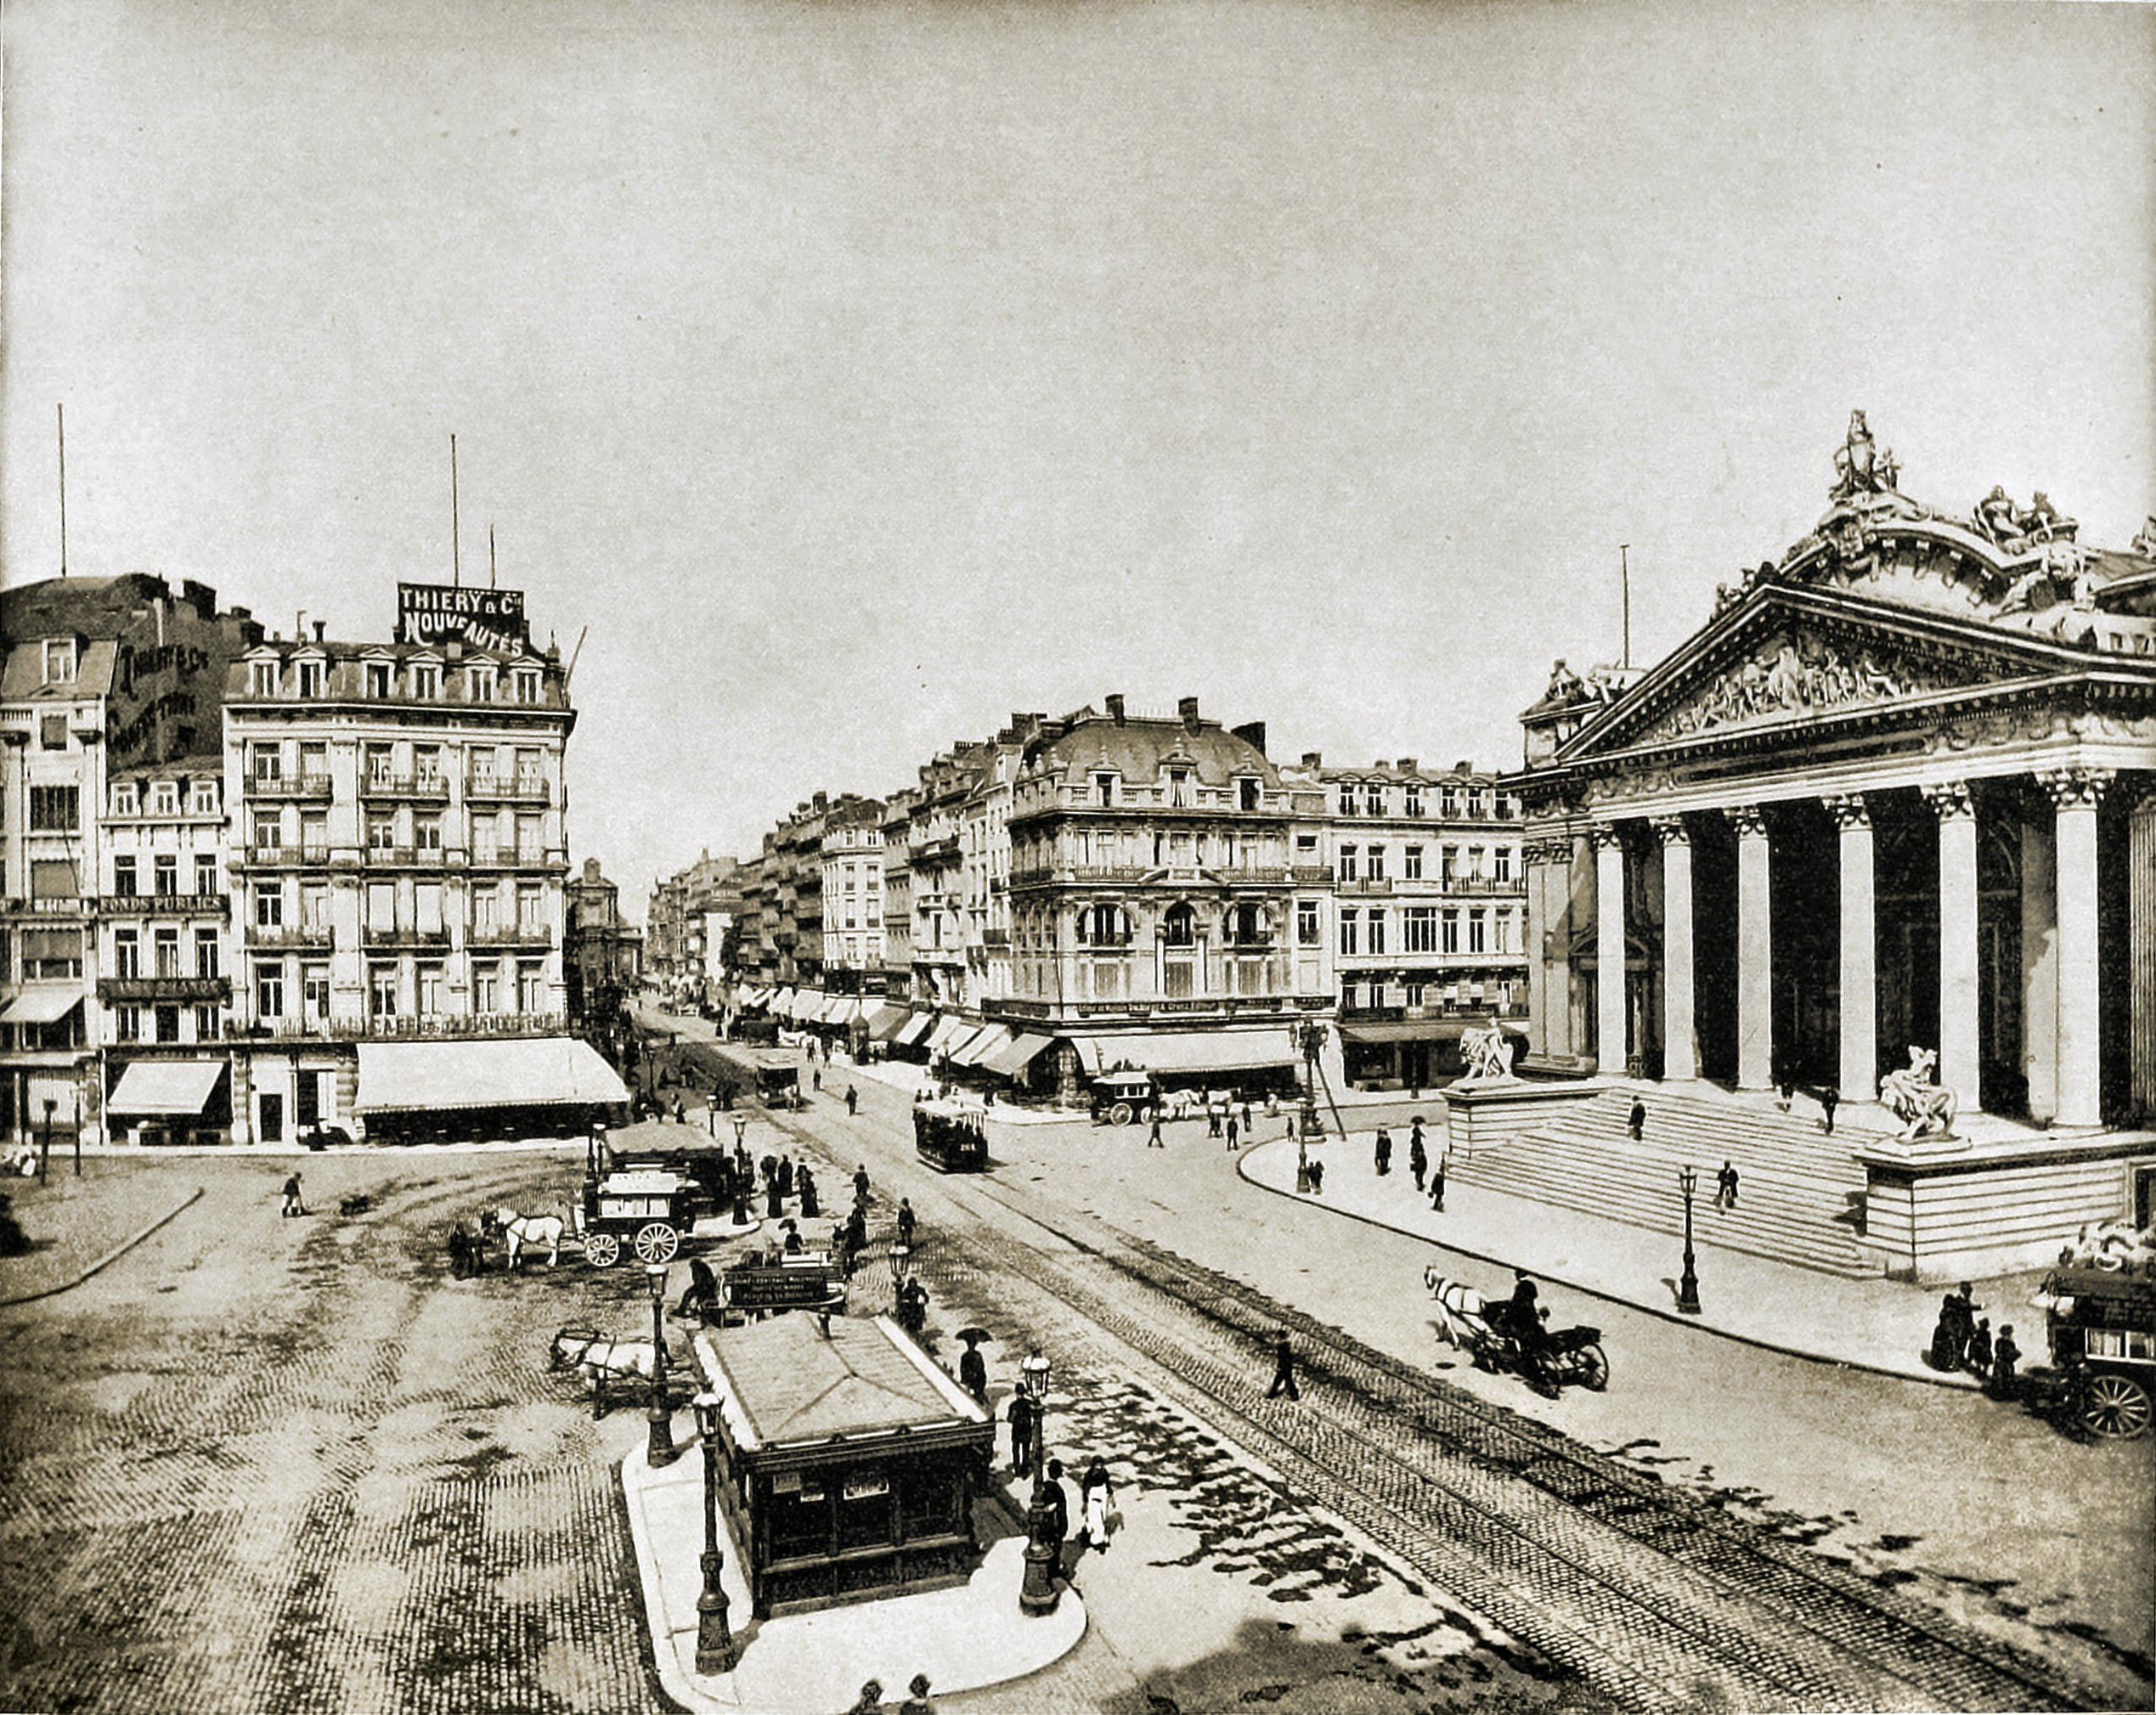 Boulevard Anspach, Brussels, Belgium about 1892